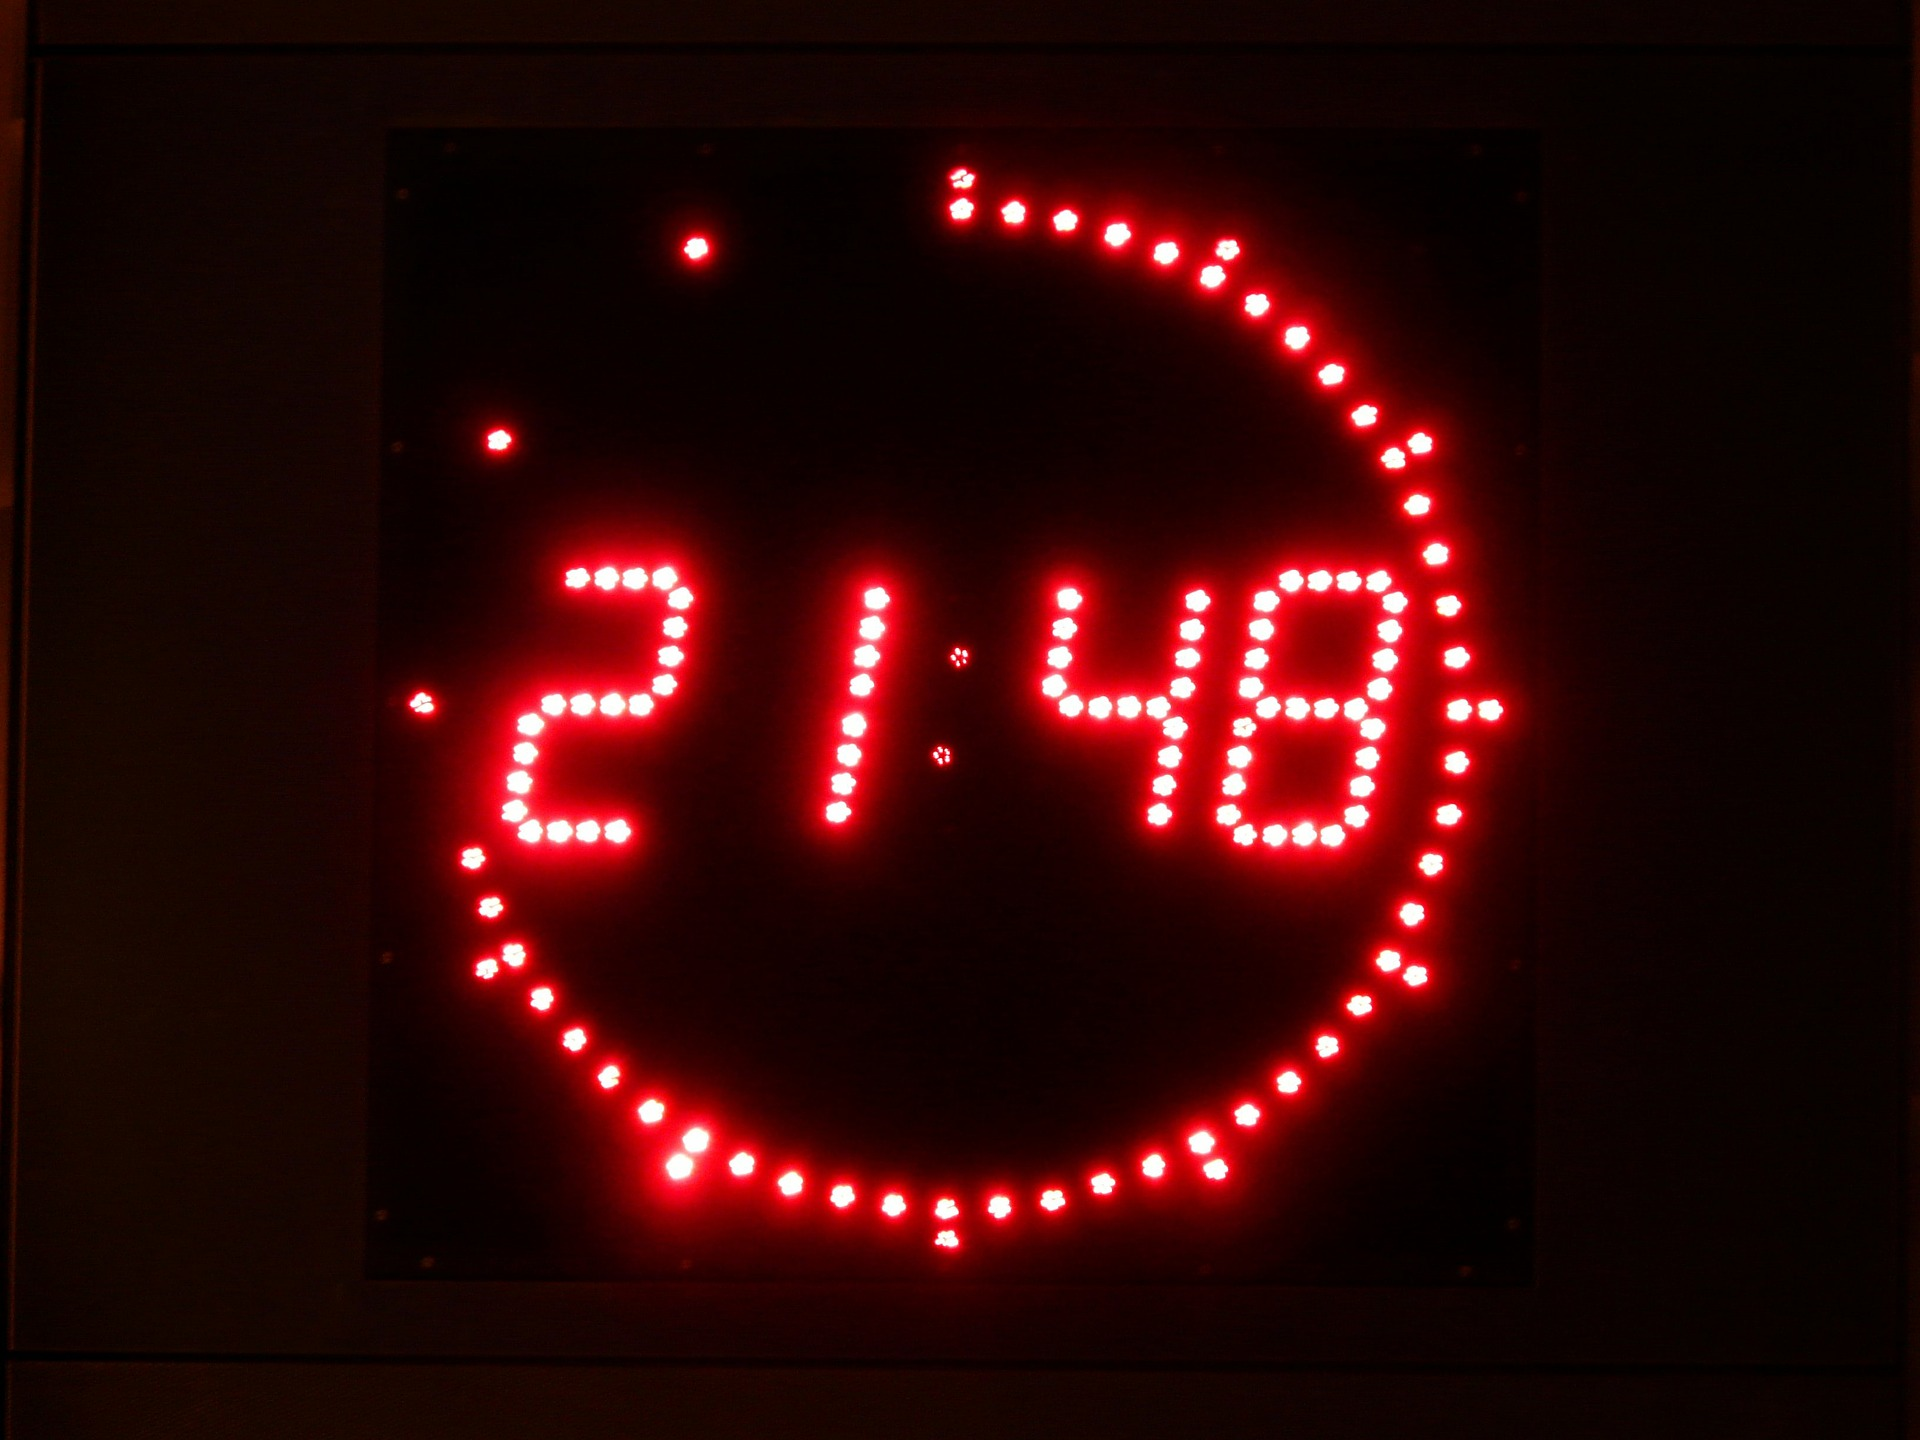 digital-clock-5689_1920